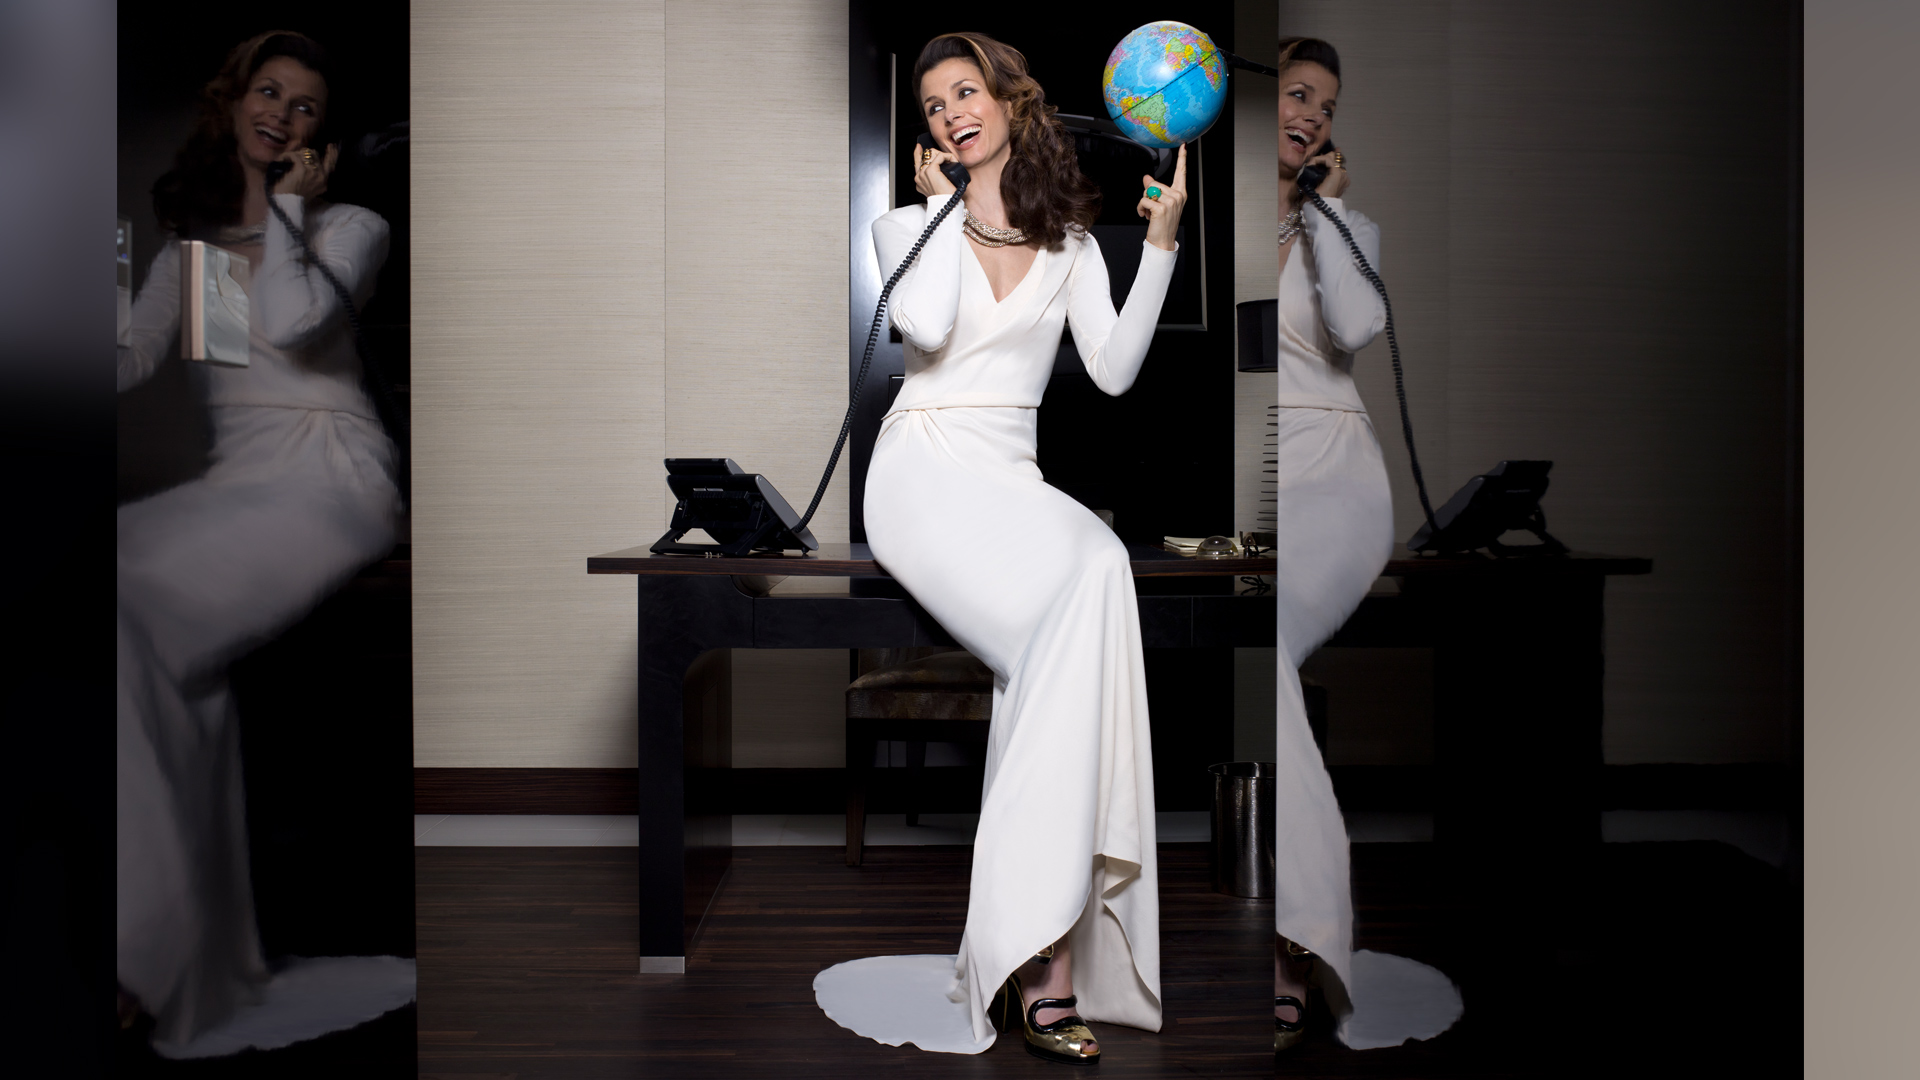 Bridget Moynahan sitting pretty with the world in her hands